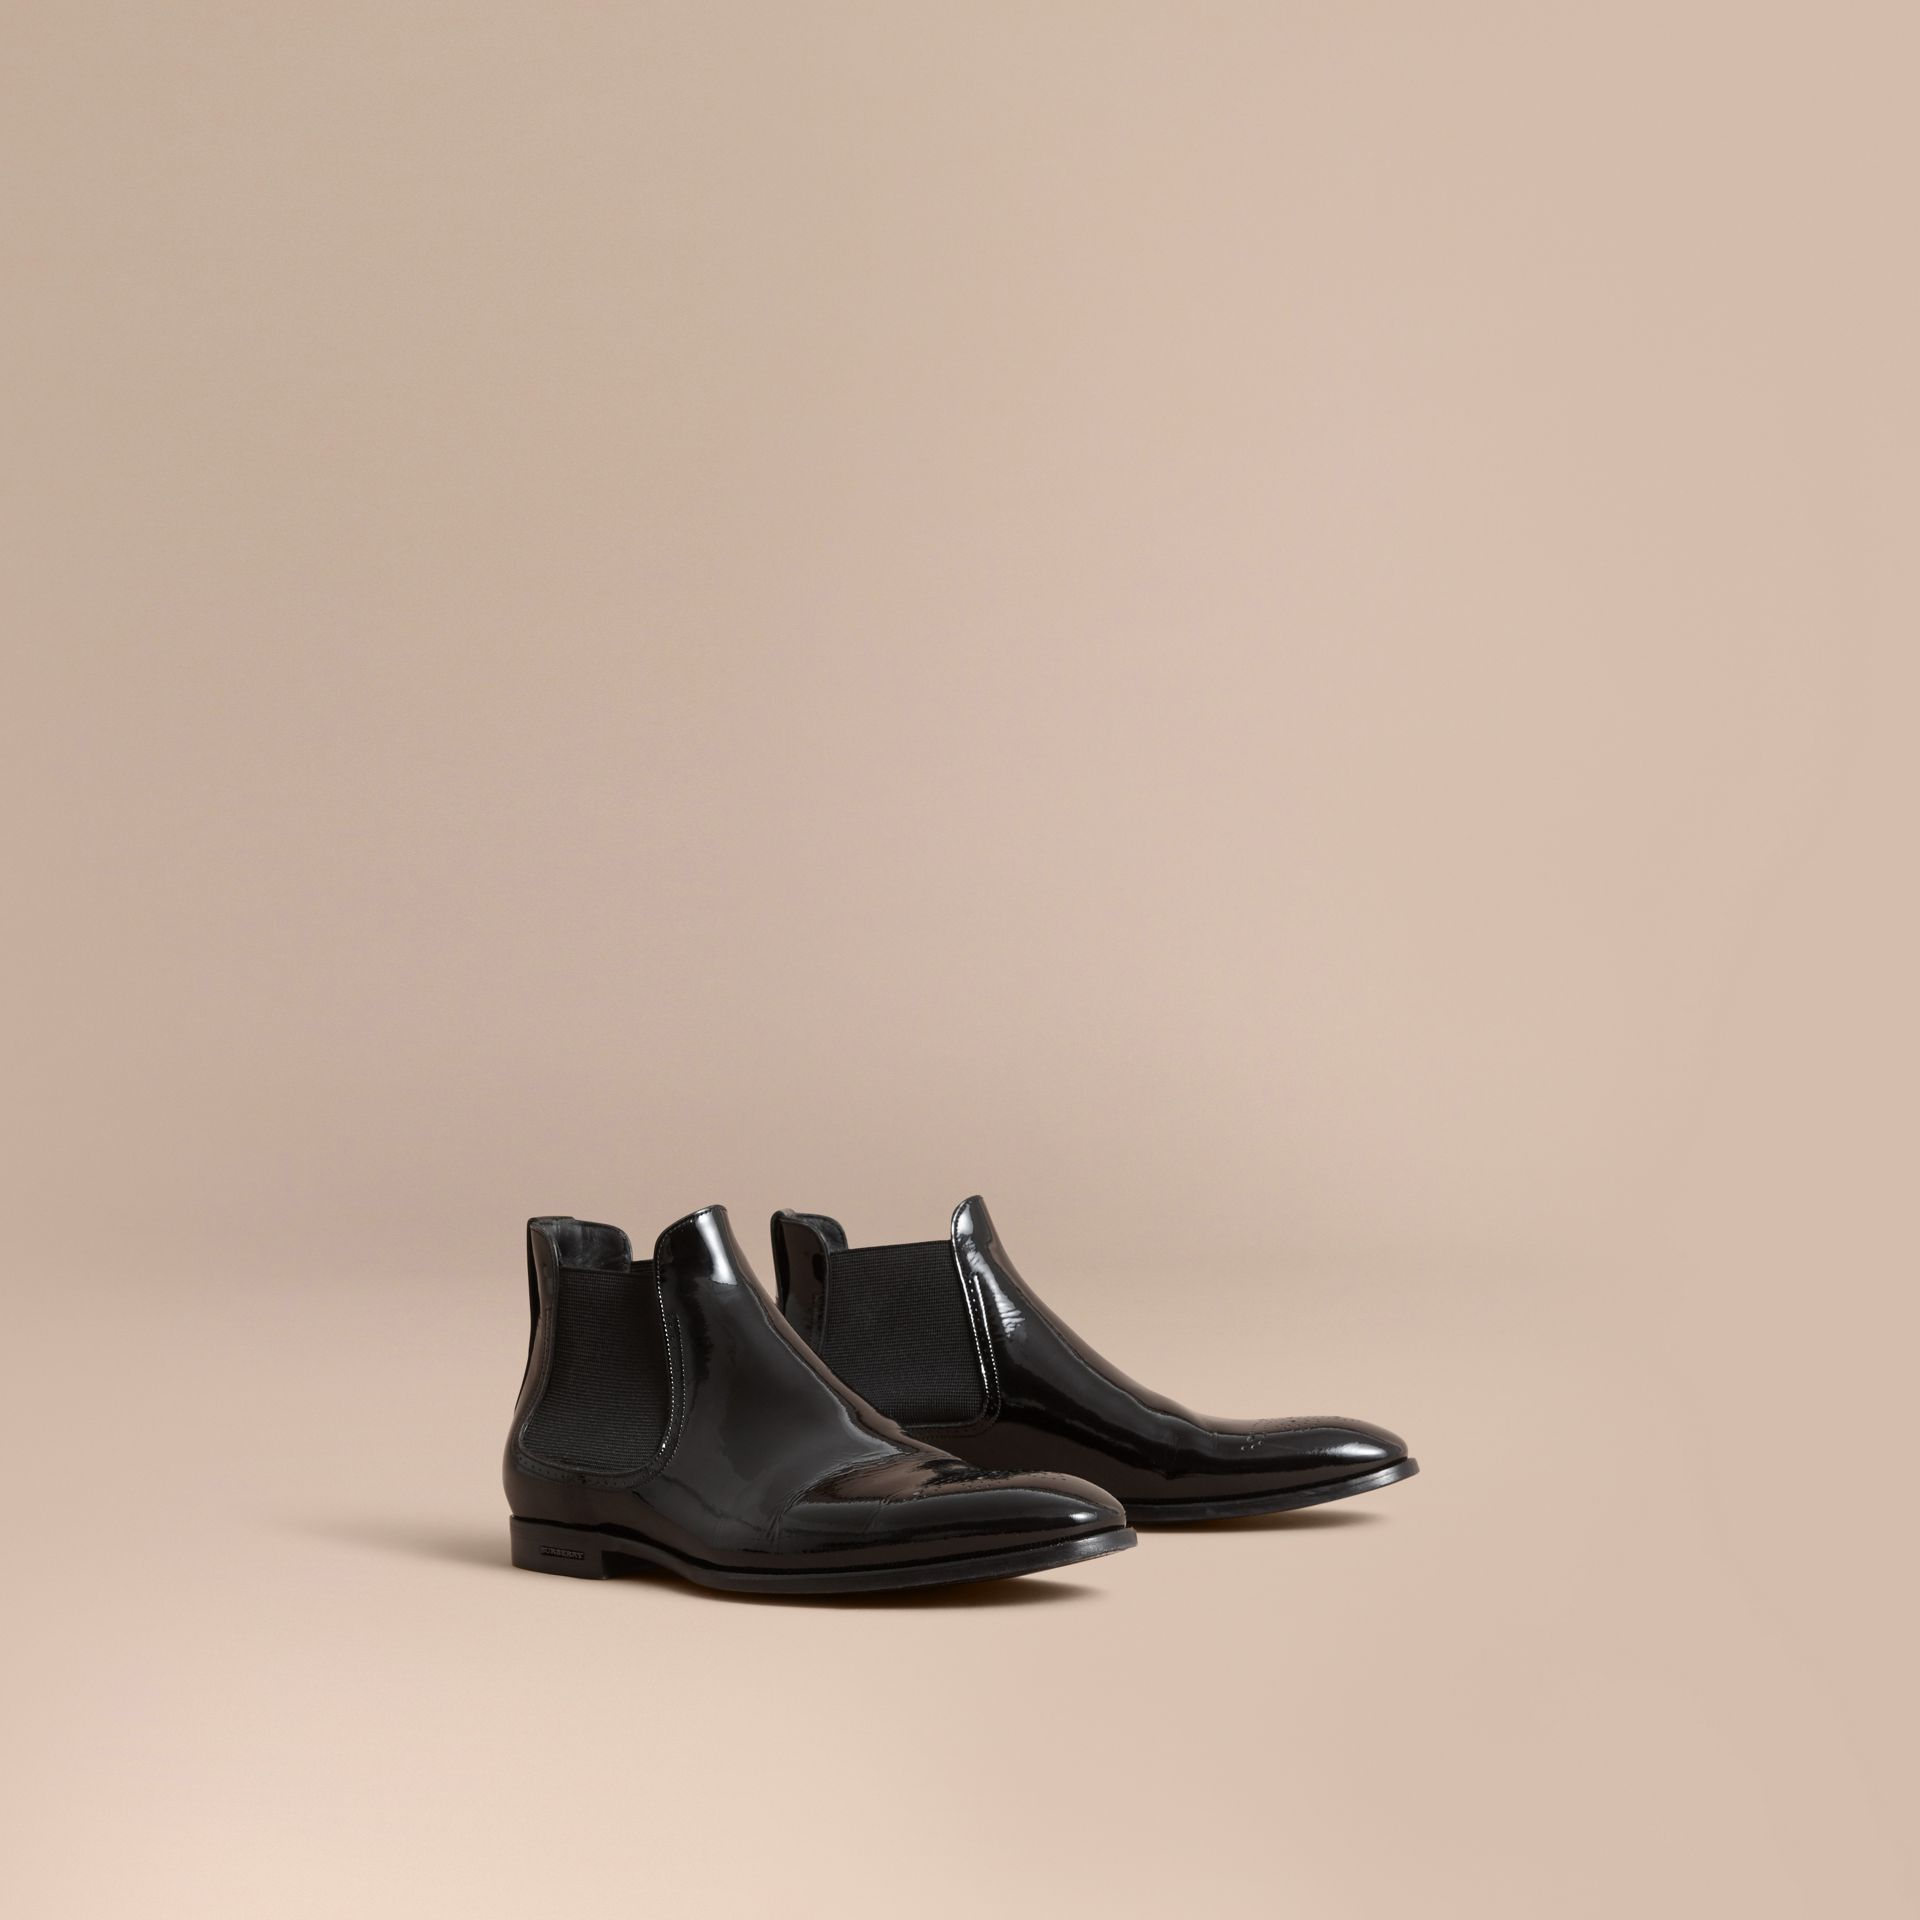 Polished Leather Chelsea Boots in Black - Men | Burberry Australia - gallery image 1